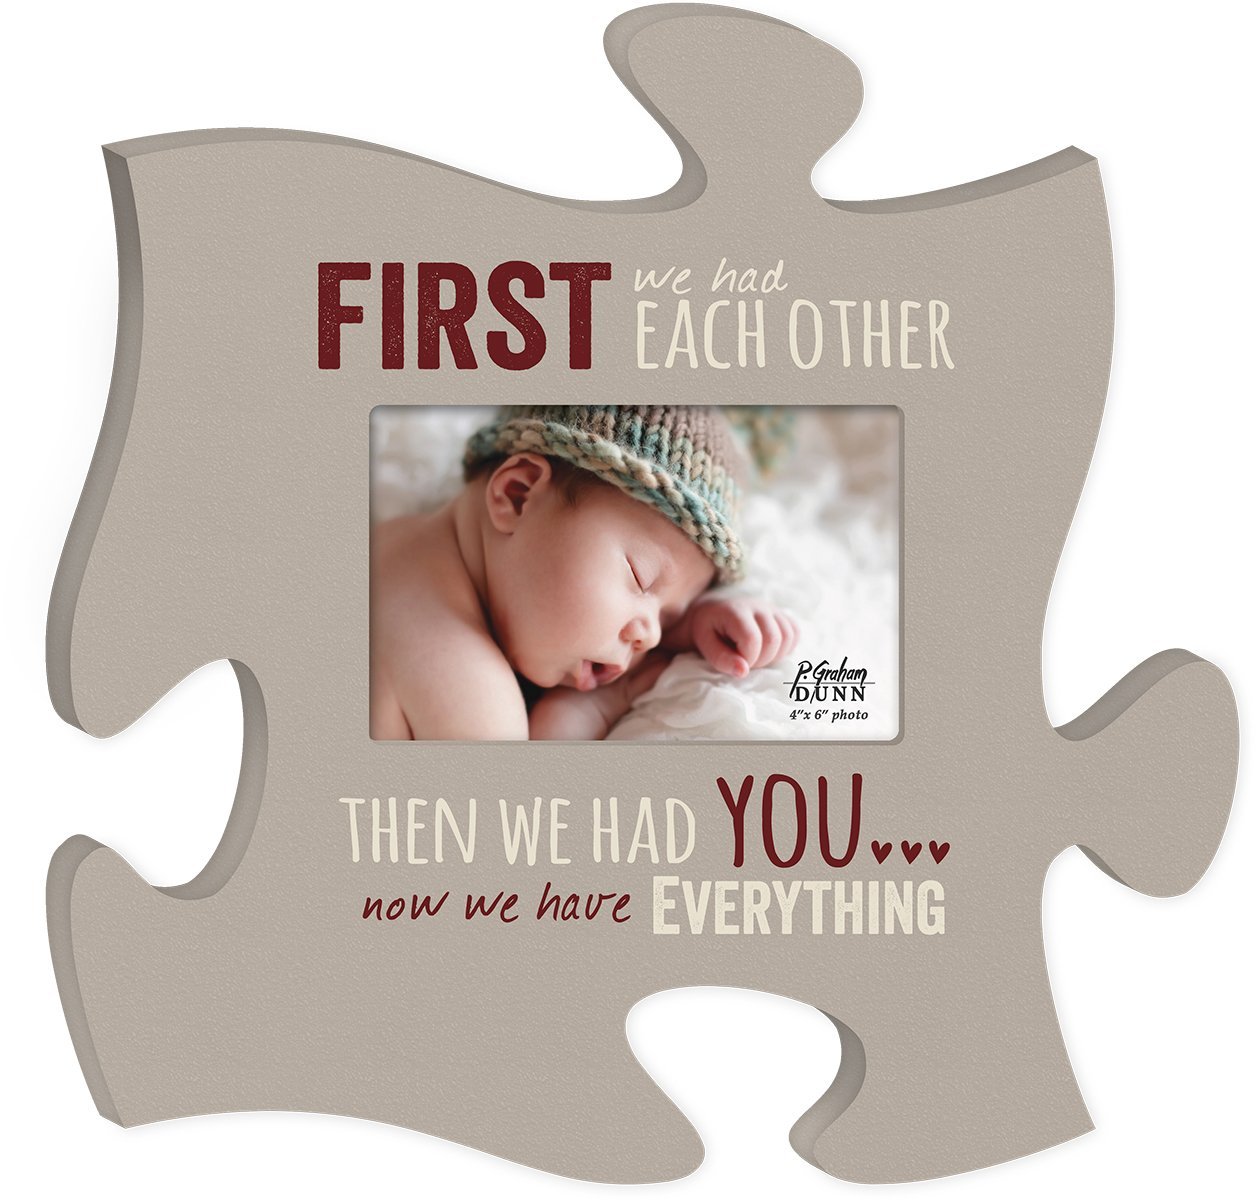 P. GRAHAM DUNN Now We Have Everything 4x6 Photo Frame Inspirational Puzzle Piece Wall Art Plaque by P. Graham Dunn